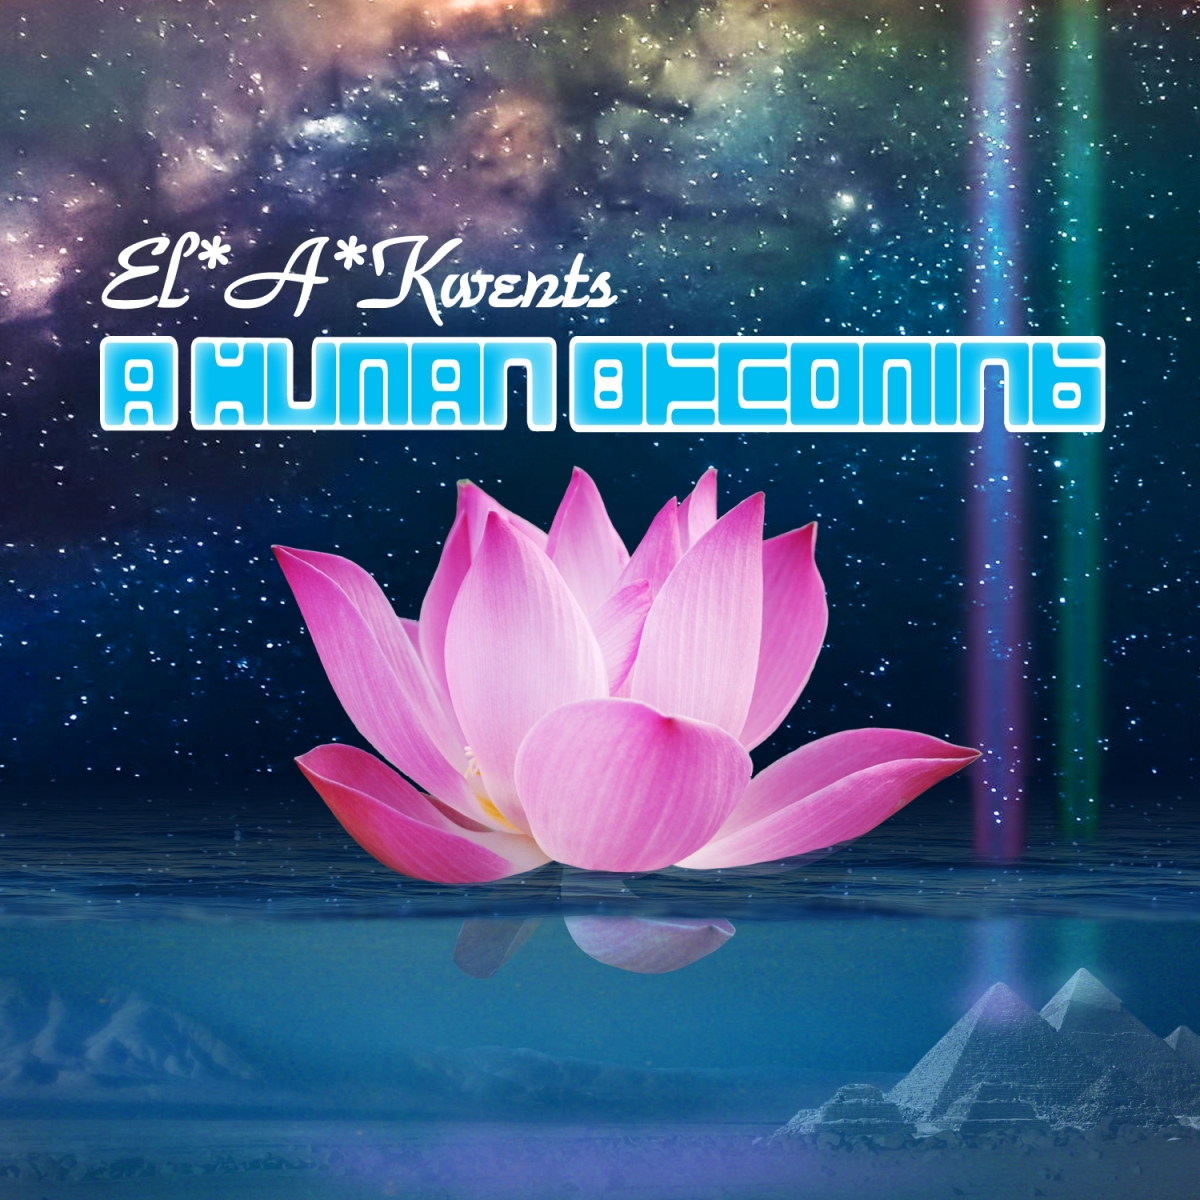 Duality [Lyrics] | El*A*Kwents - A Human Becoming